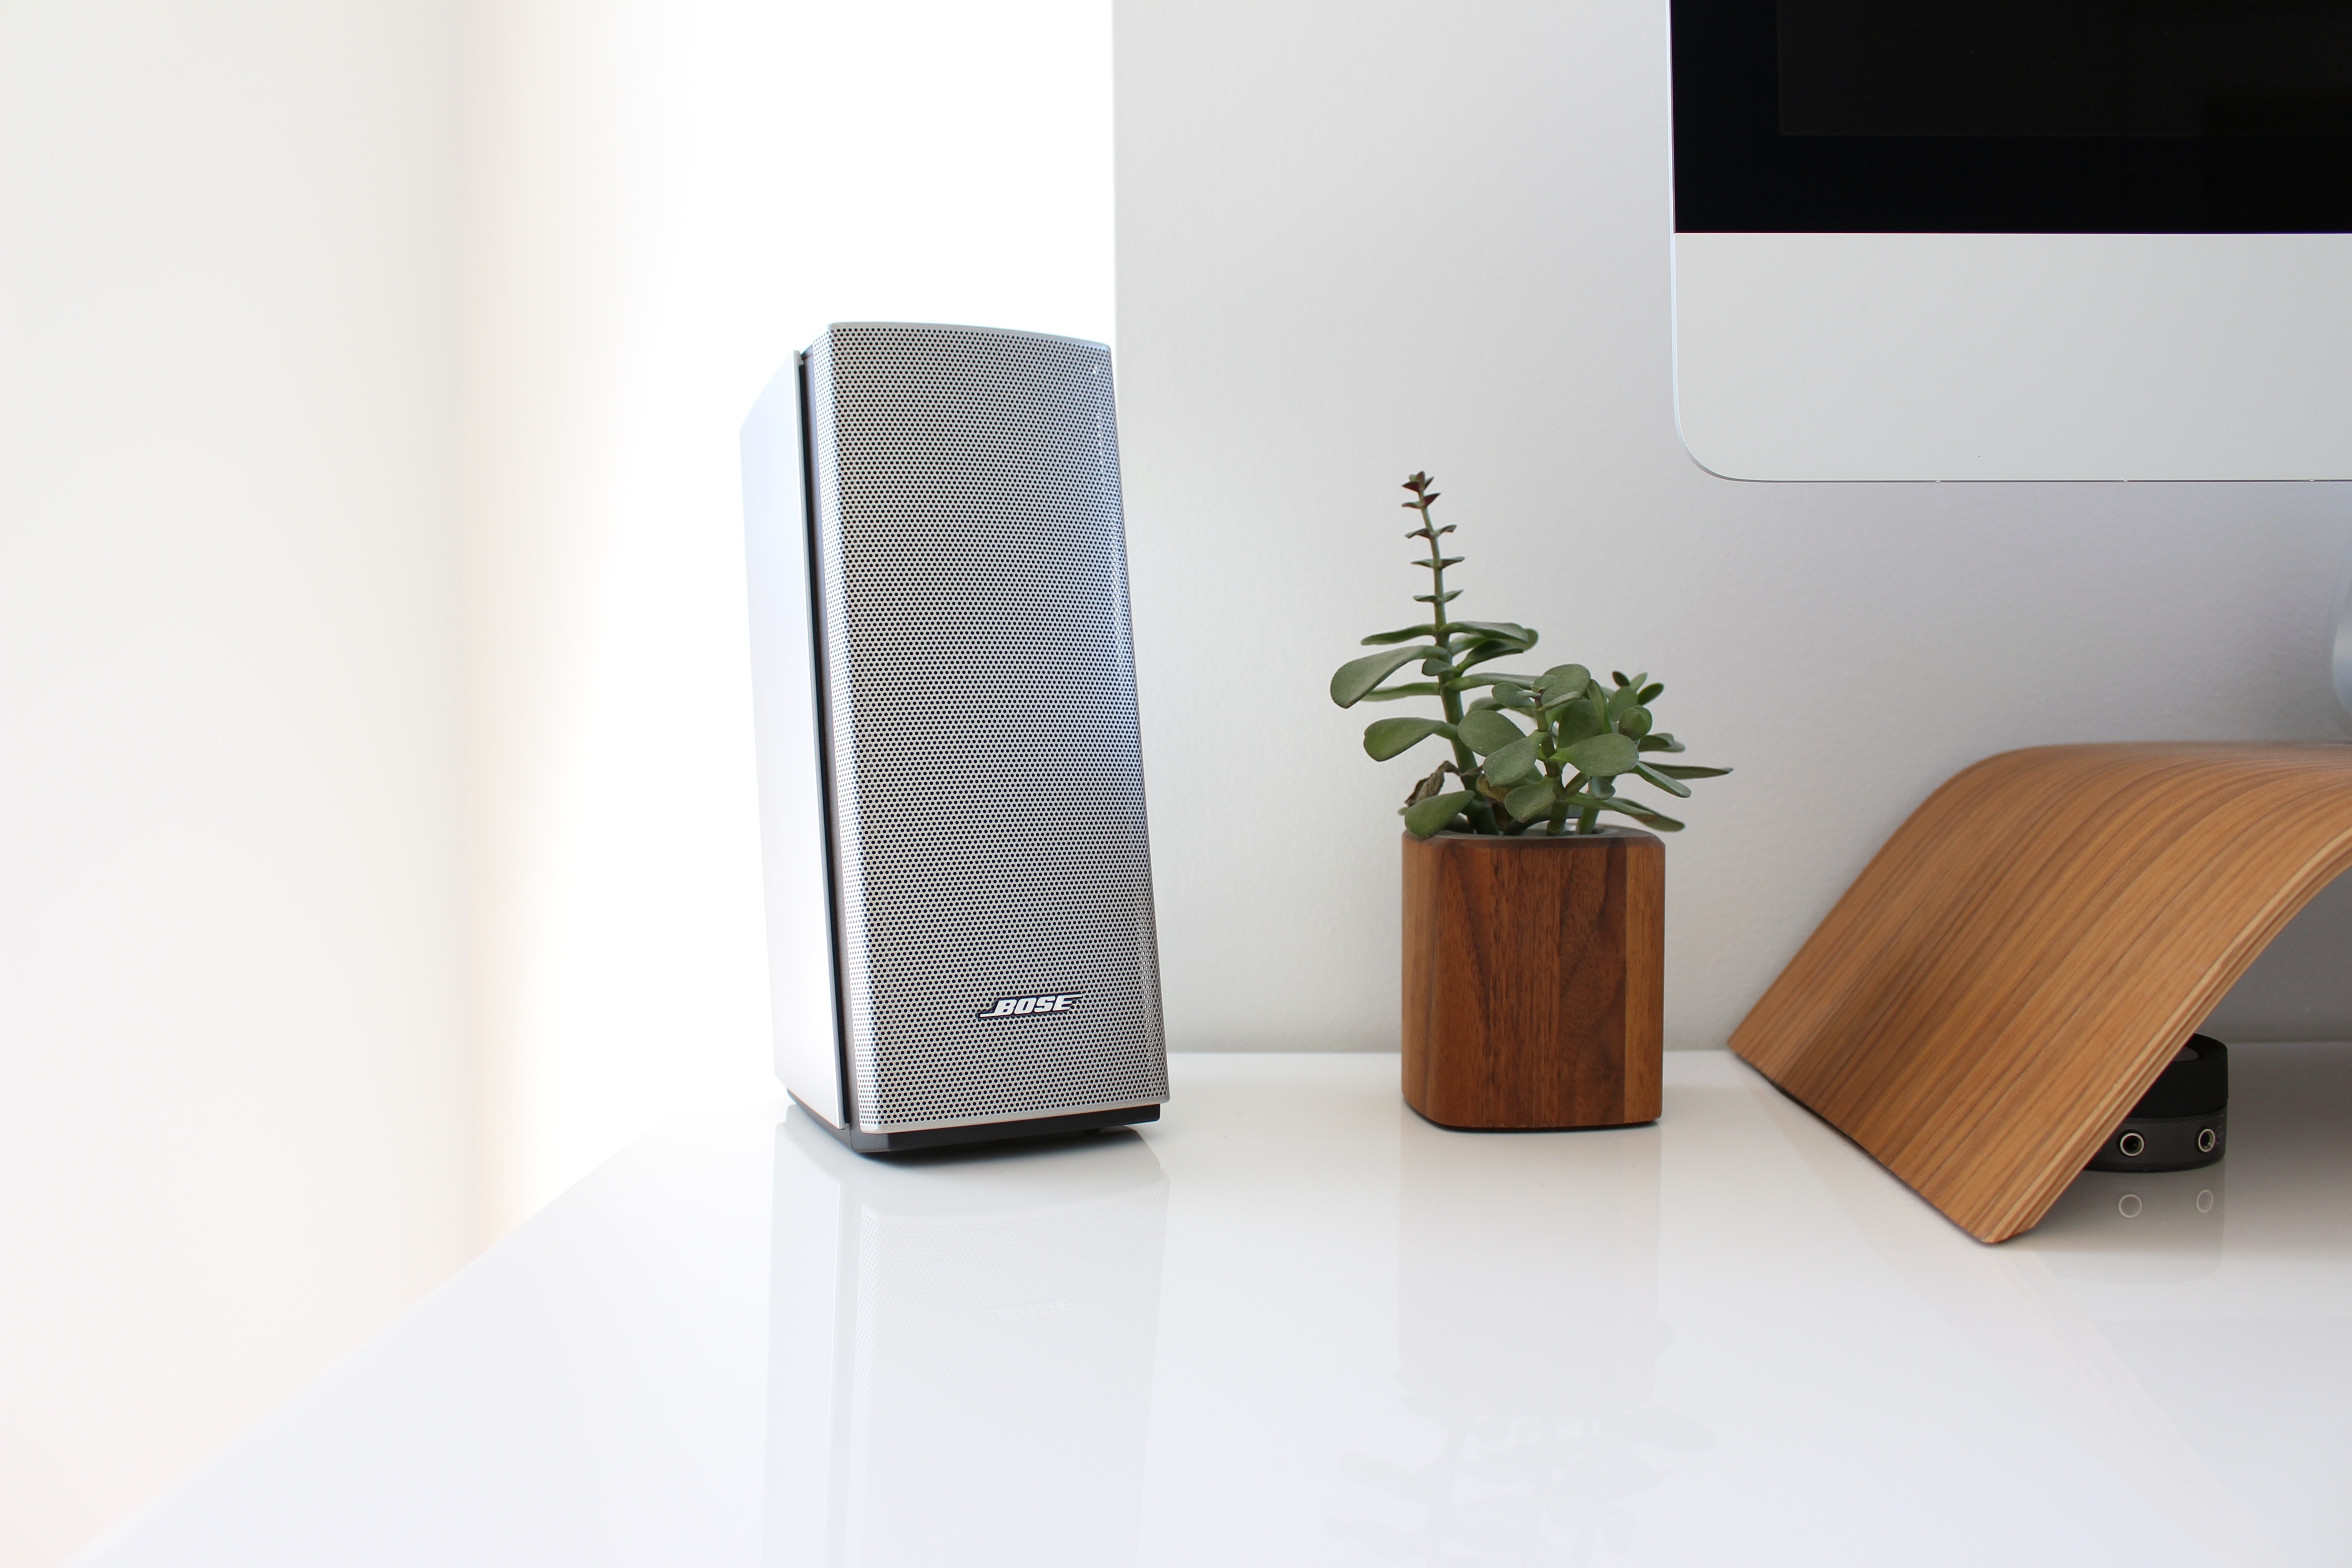 A tall gray loudspeaker and a small plant in a wooden flower pot beside a computer screen